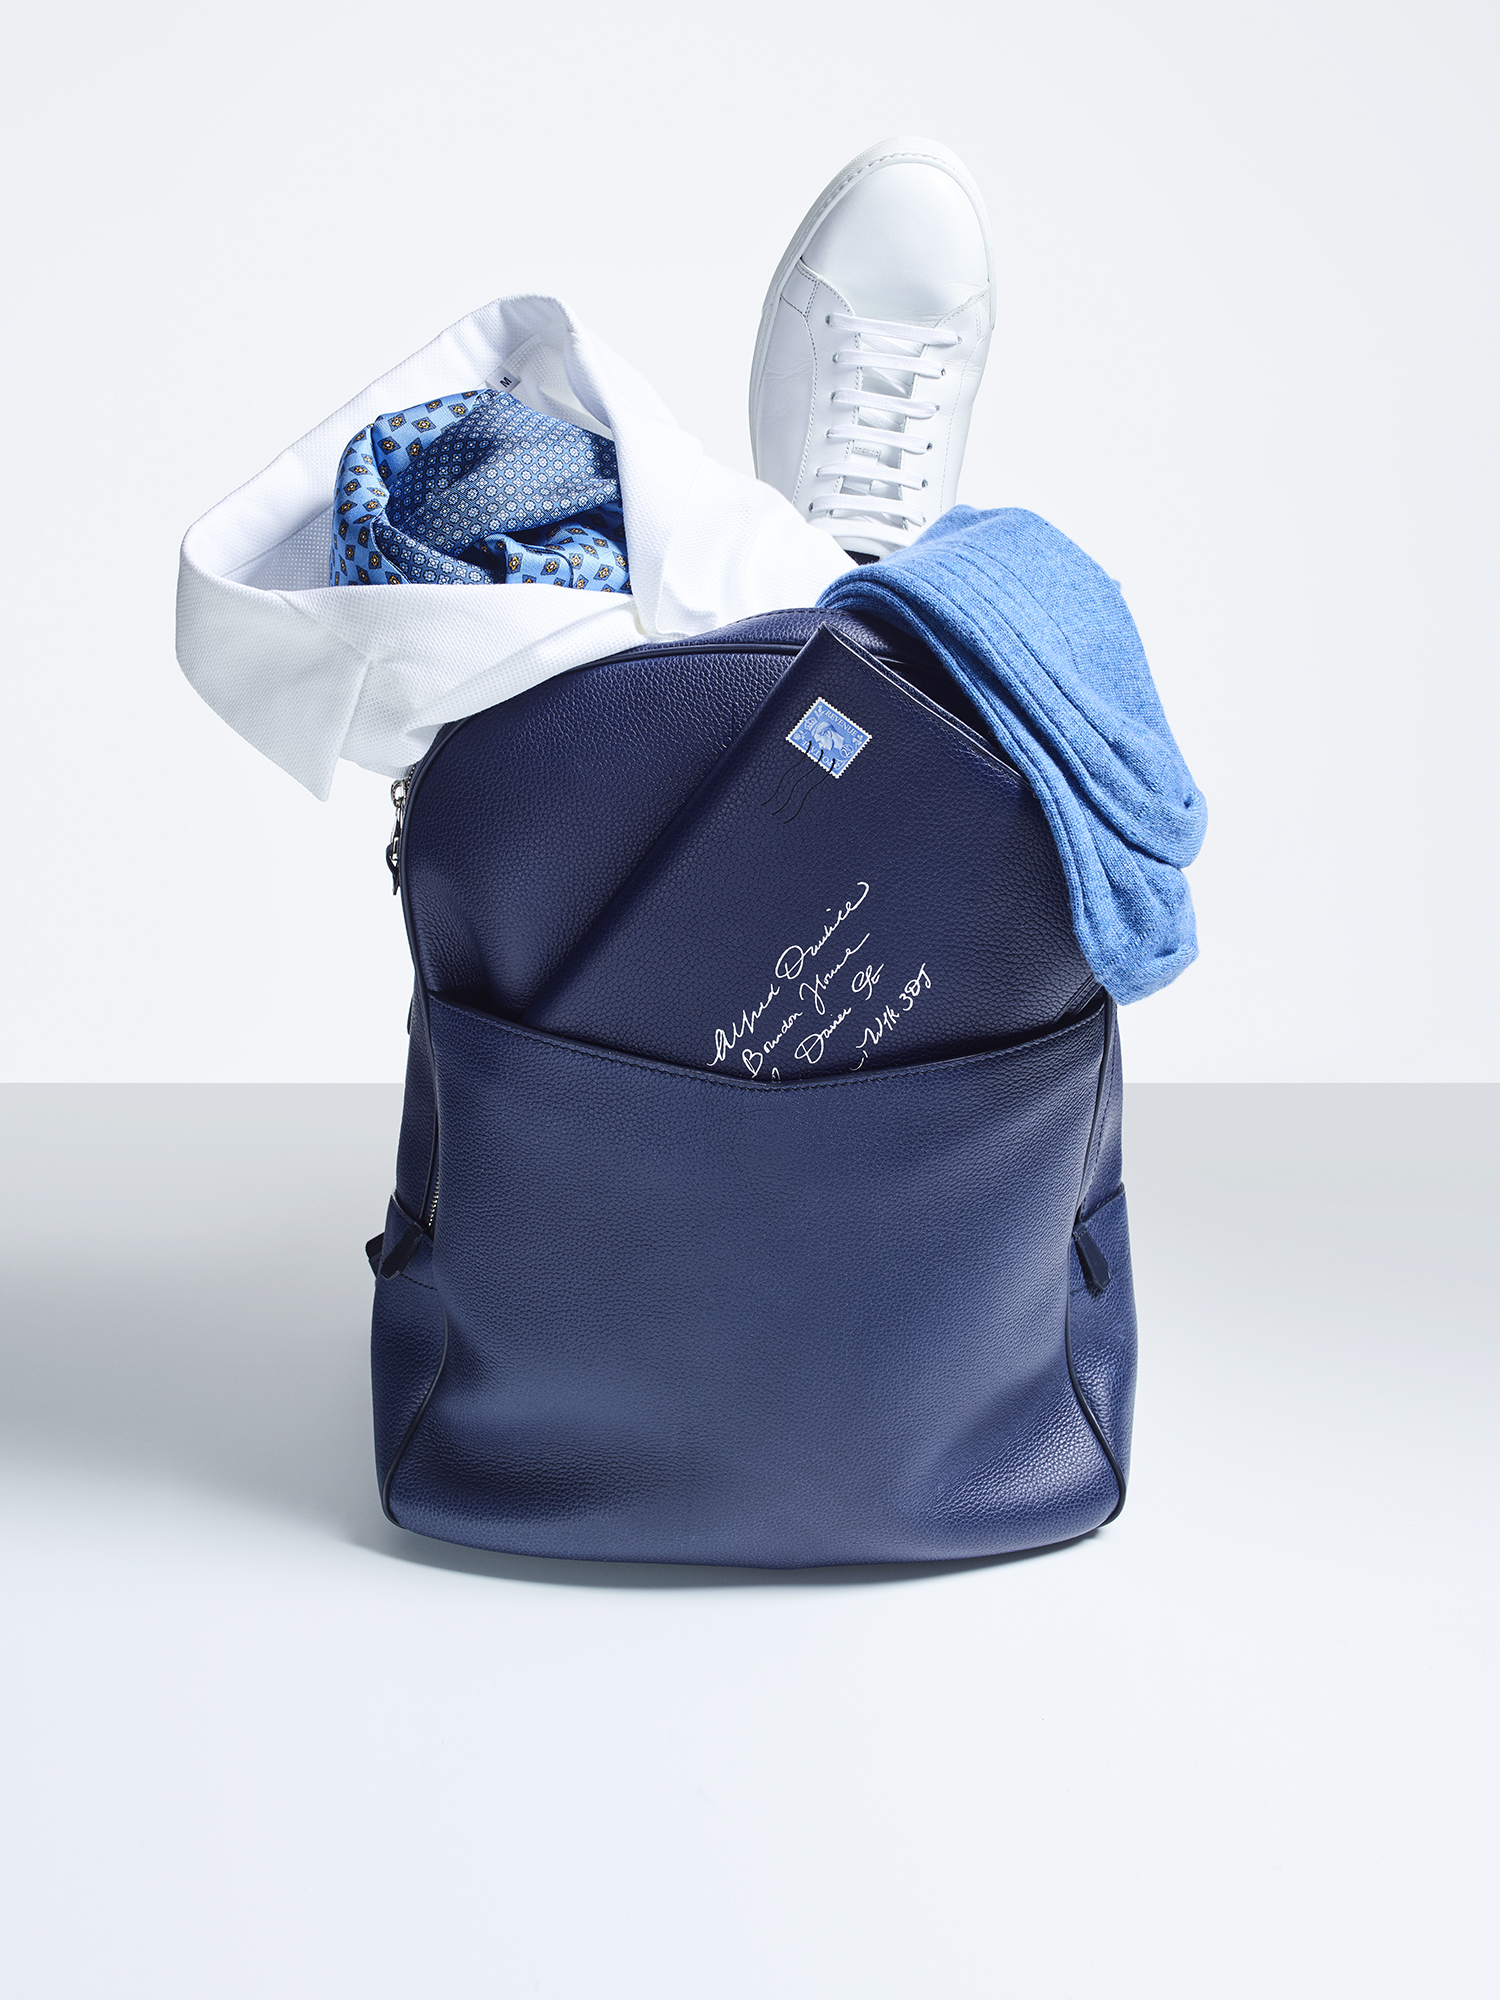 Boston rucksack, £1,150; stripe socks, £50; leather sneakers, £360; silk polo shirt, £195; printed scarf, £195; notebook, £315